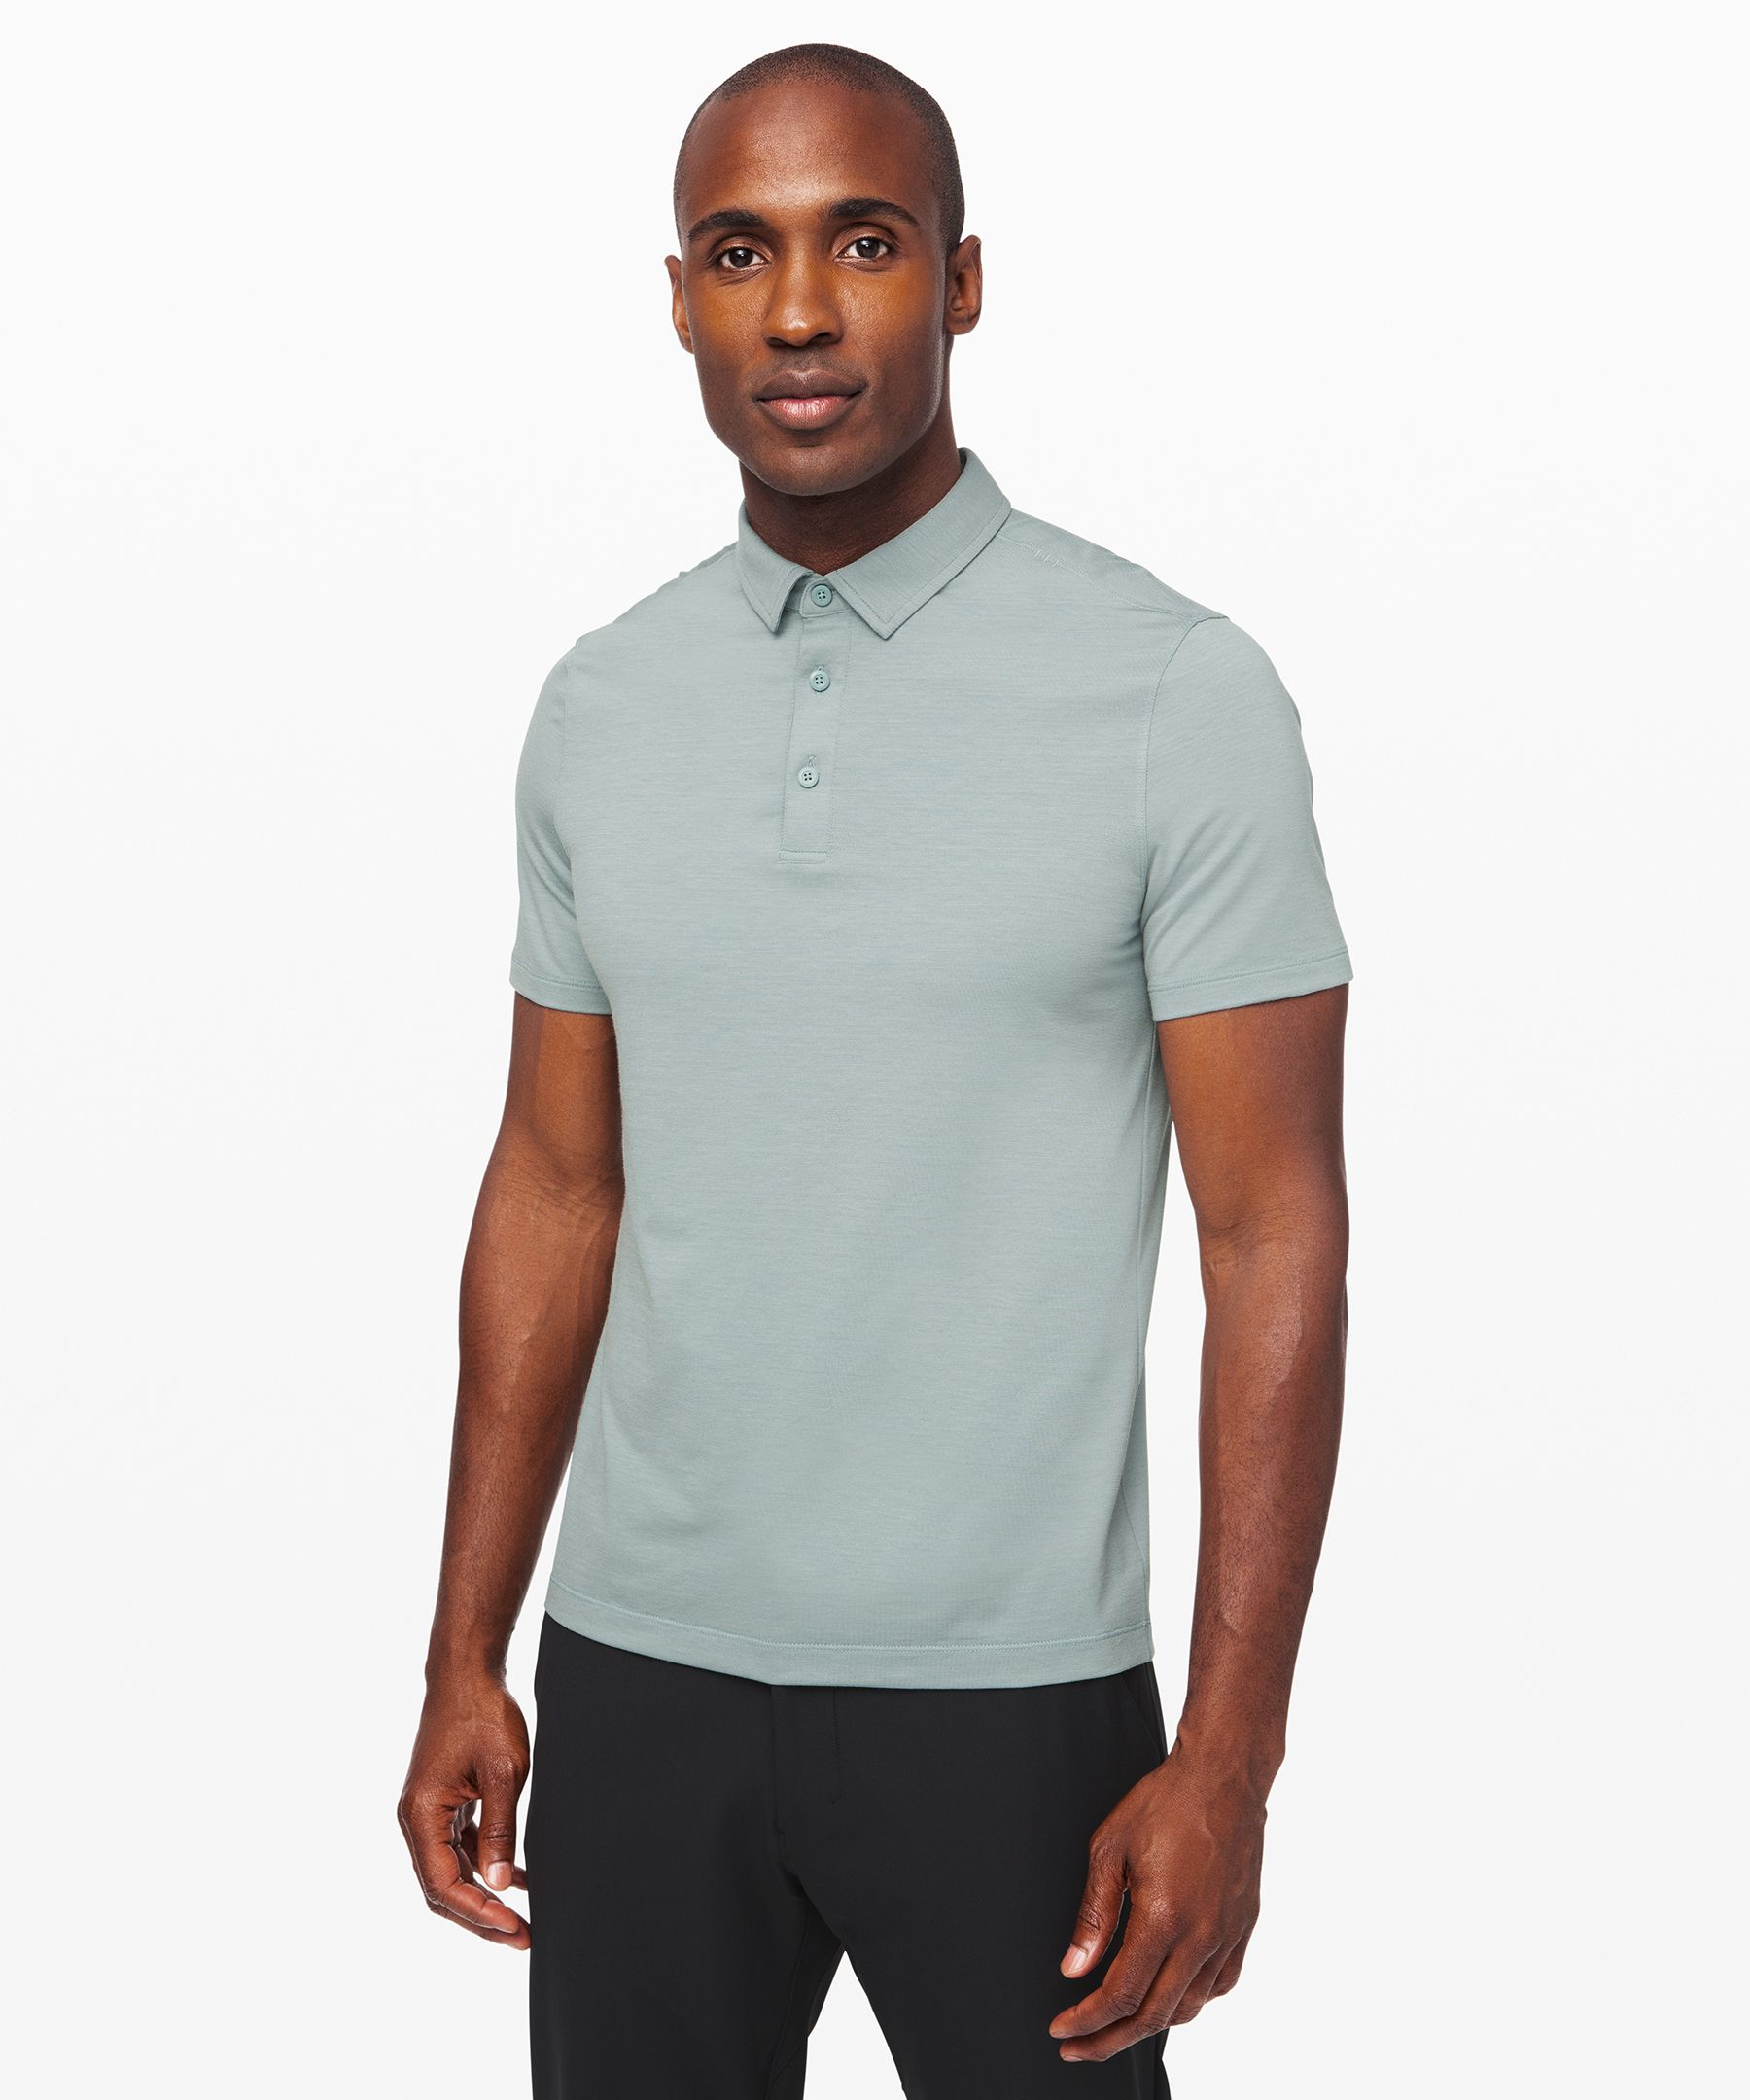 Evolution Polo Mens Short Sleeve Tops Lululemon Athletica